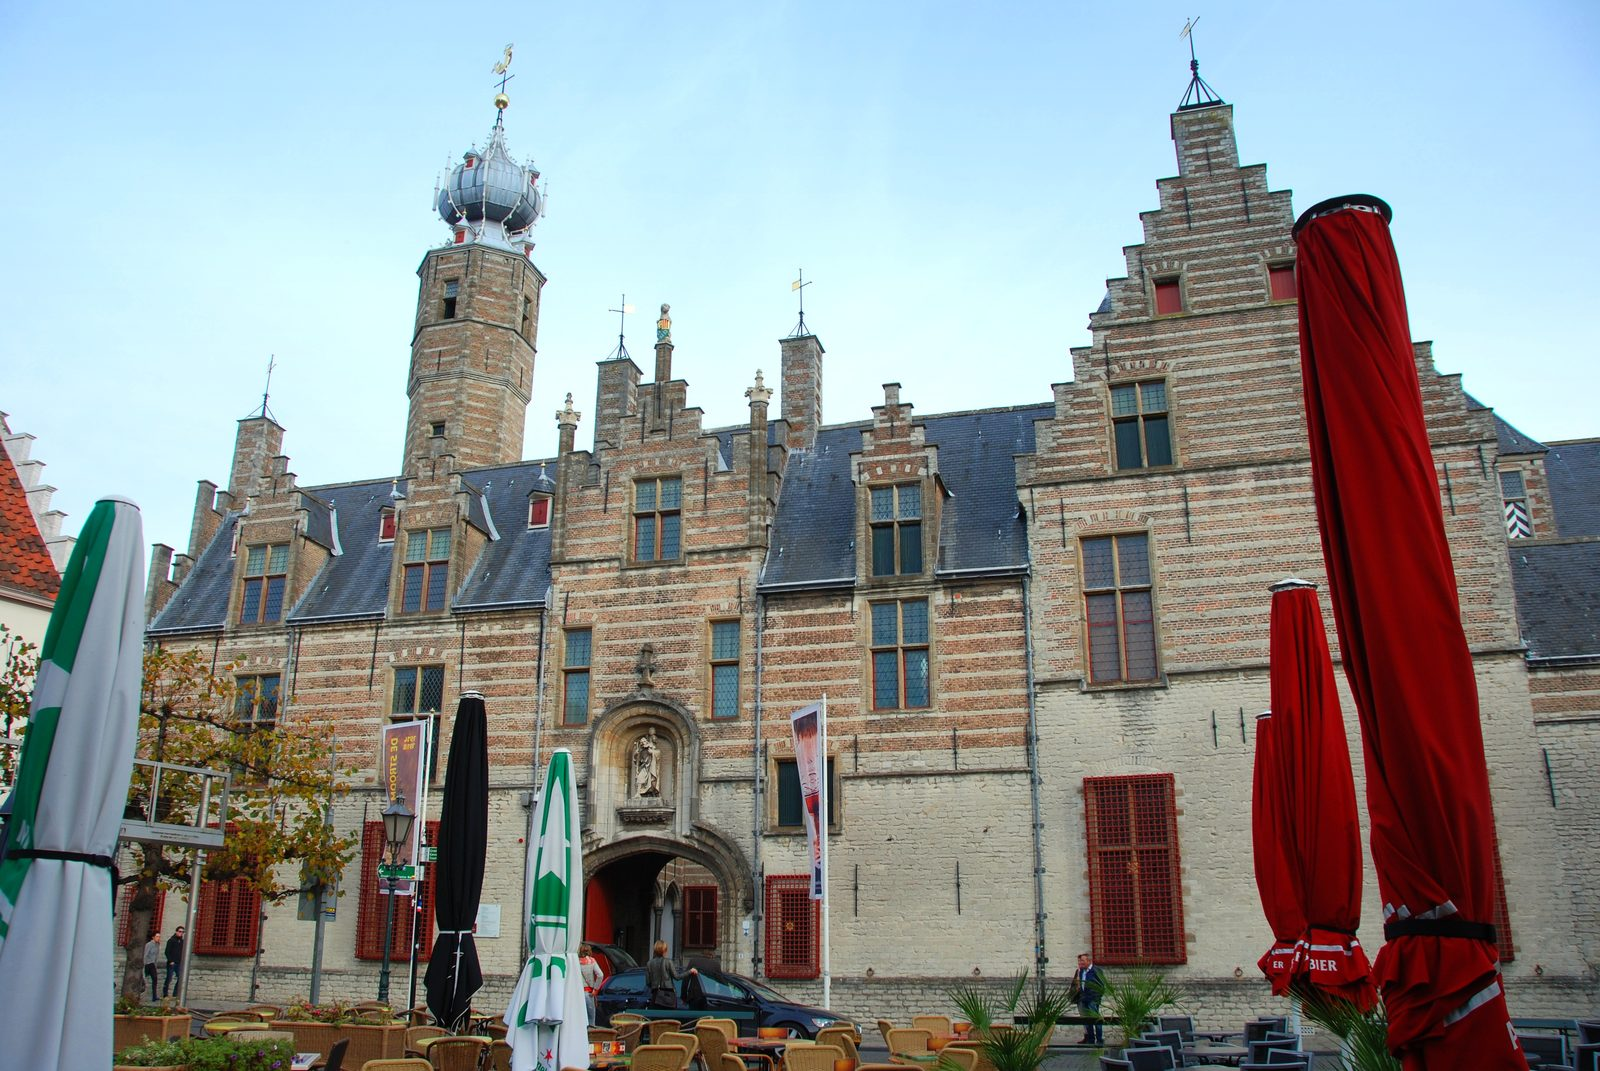 Museums in nearby towns